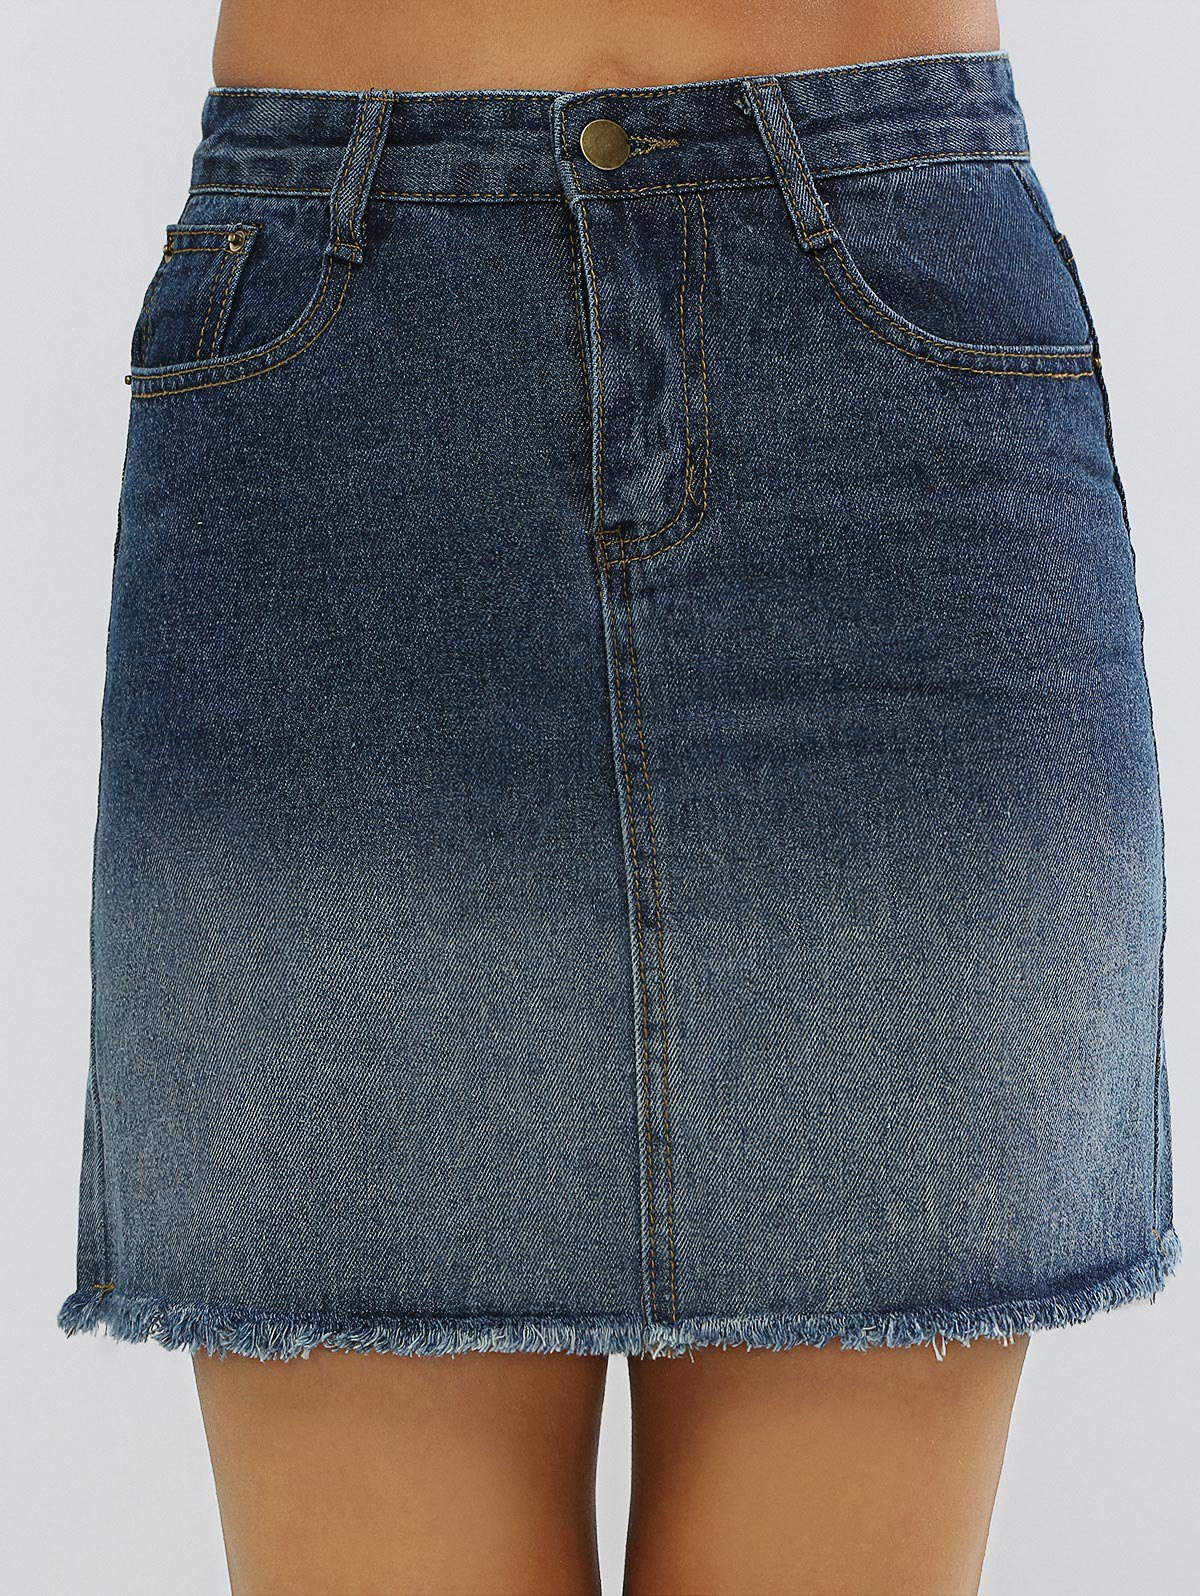 Gradient Color High Waist Denim Skirt - DENIM BLUE XL